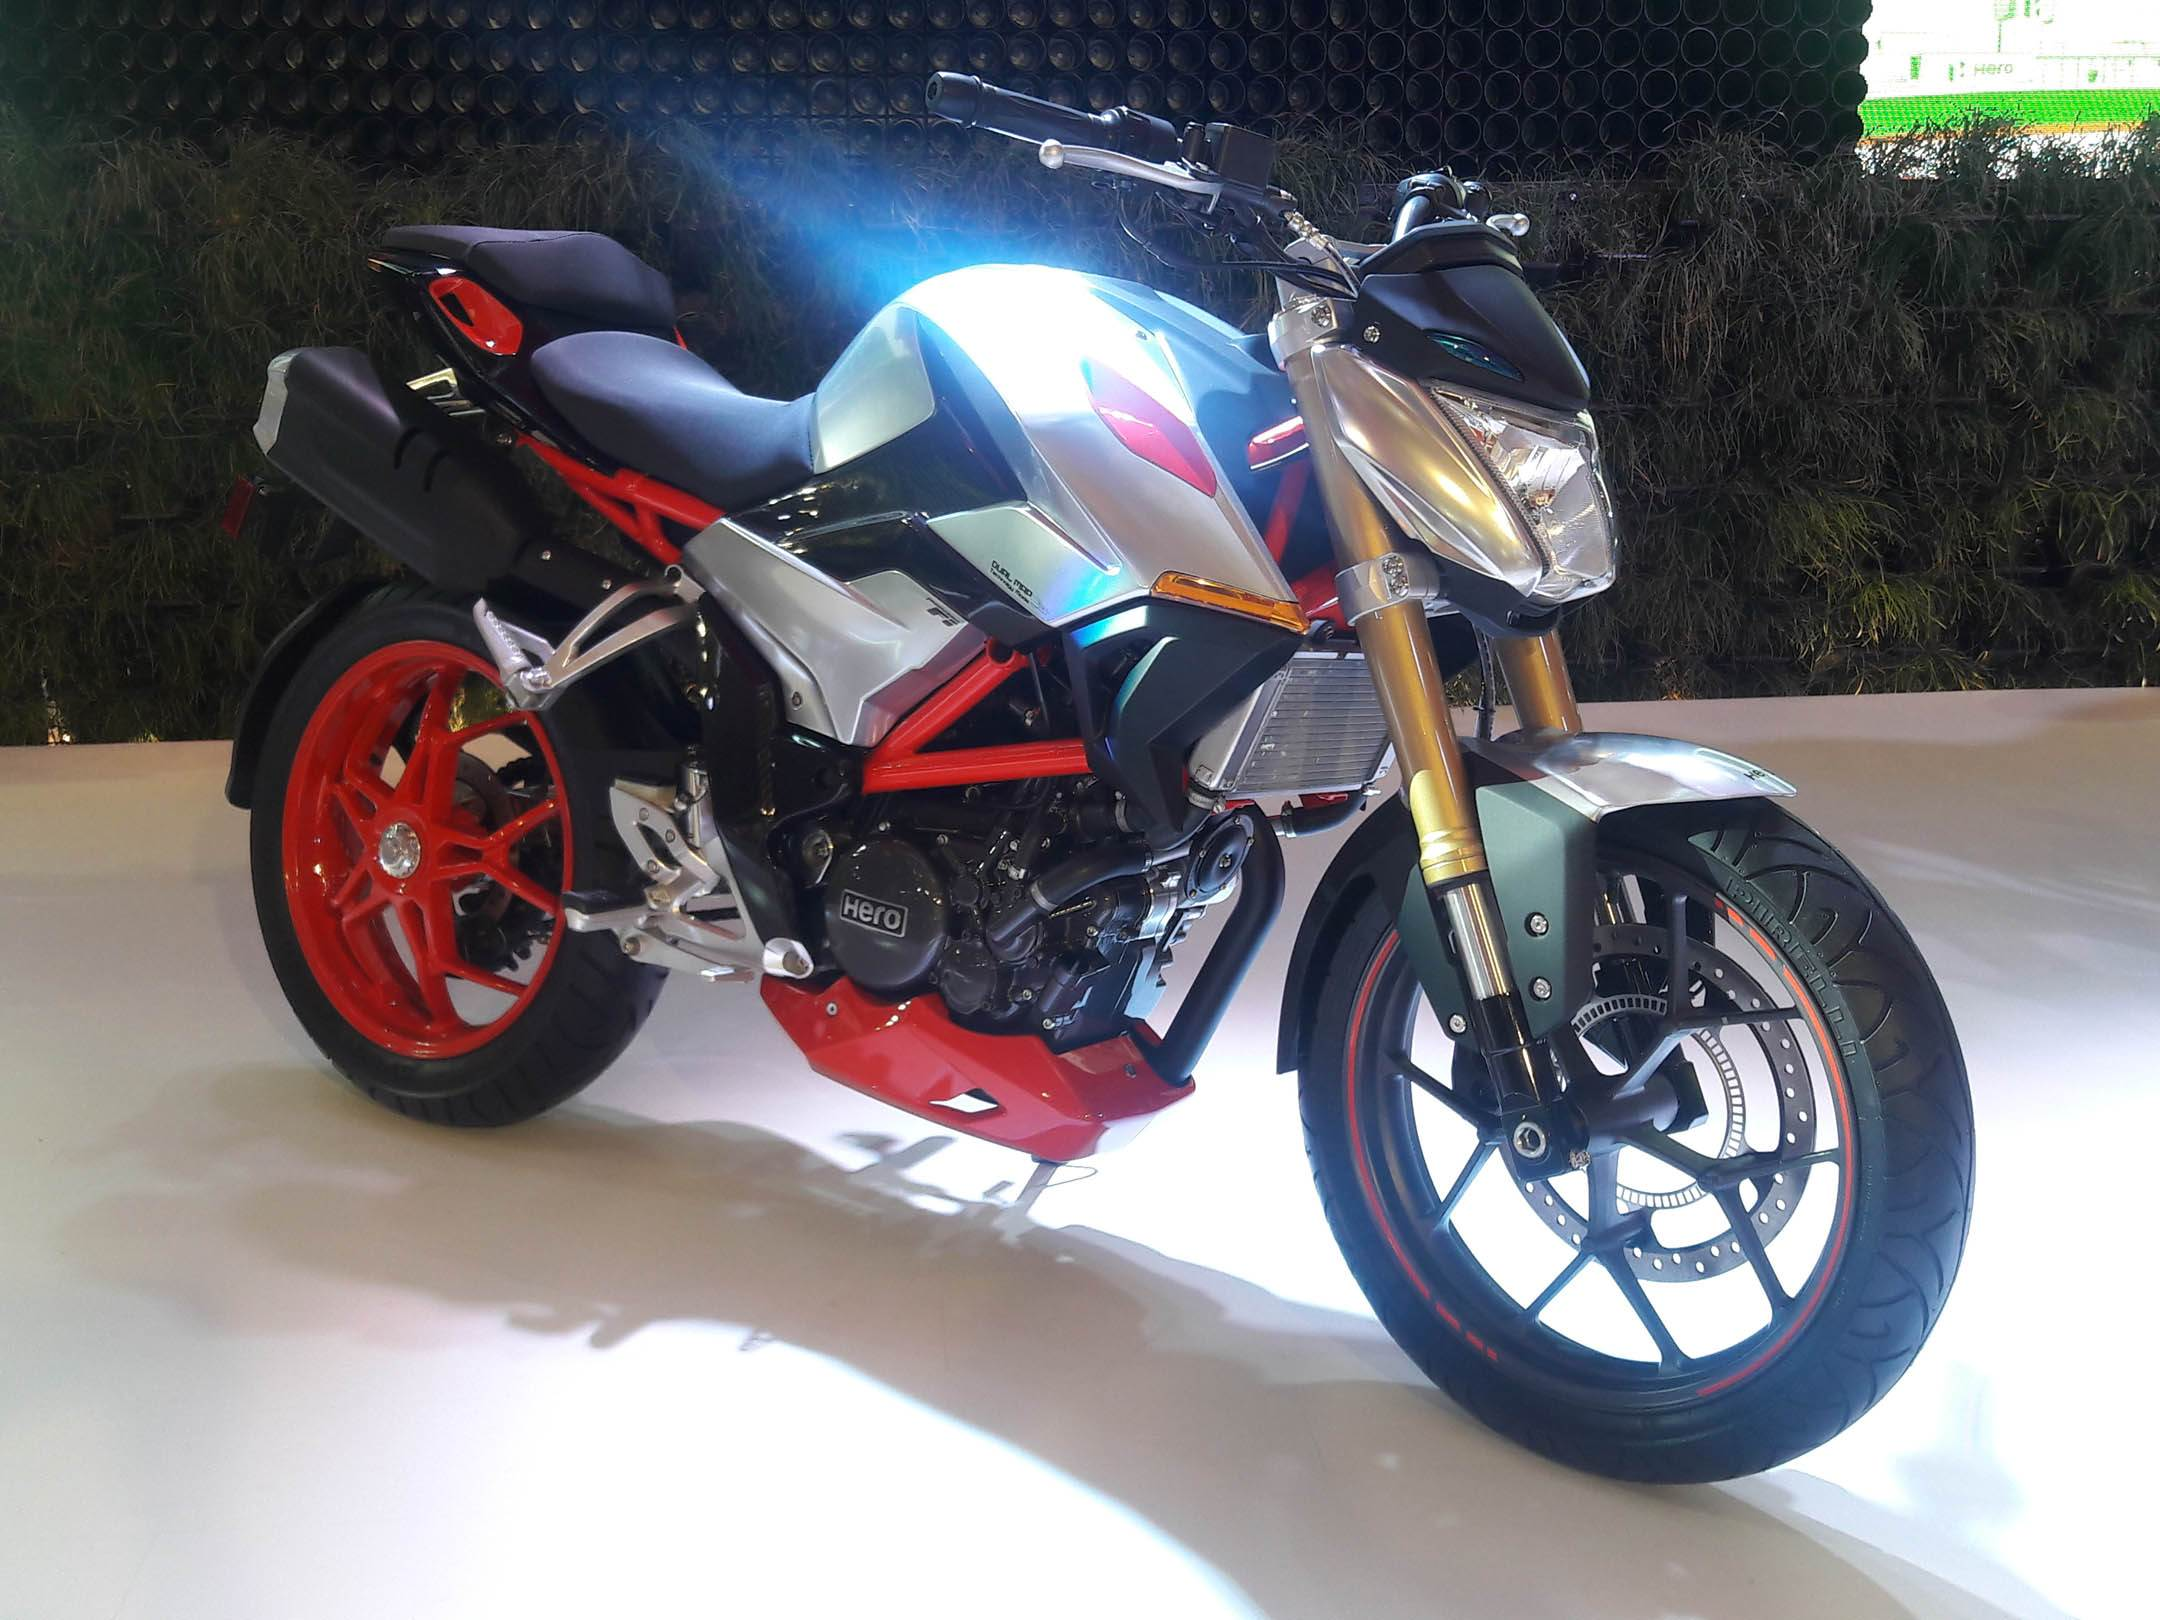 New 300cc Hero motorcycle nearing production